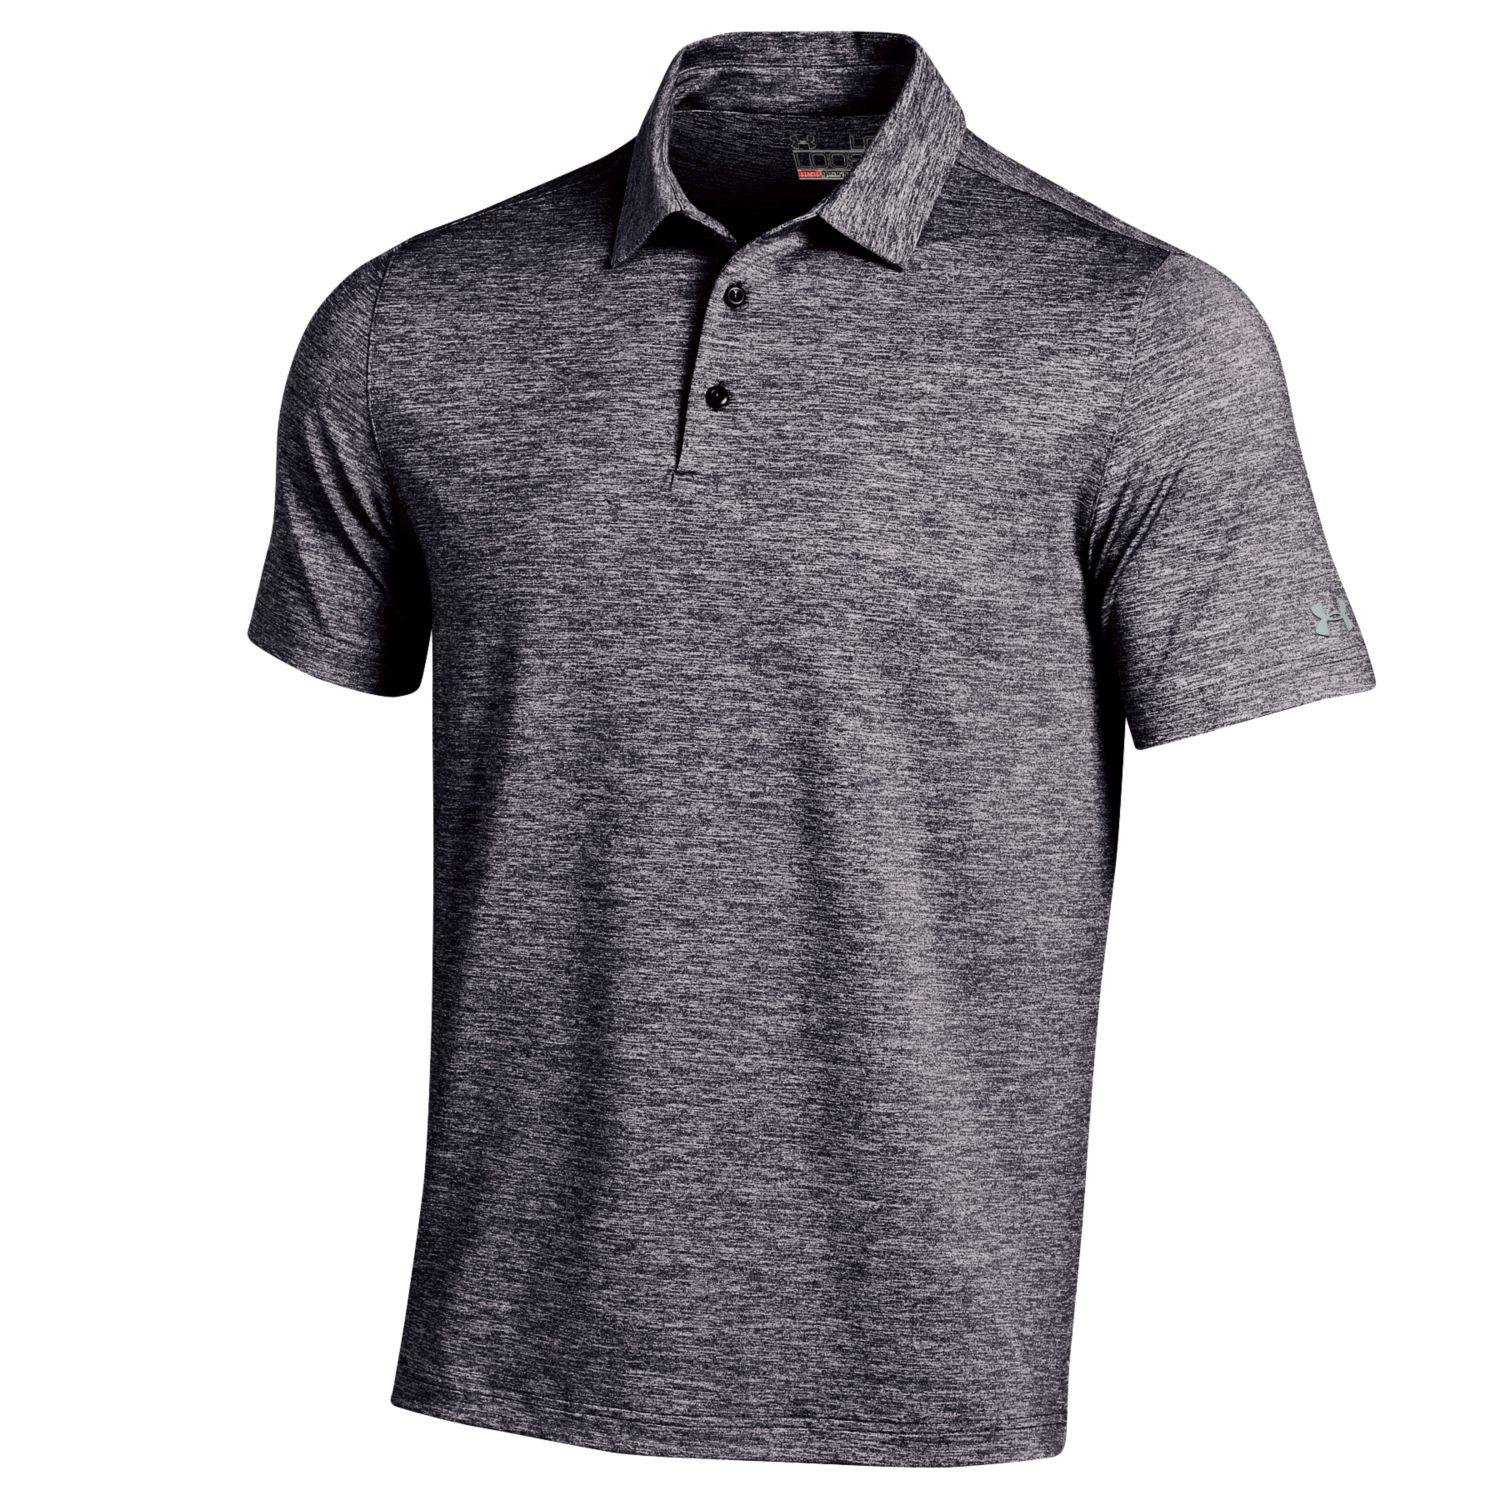 Under Armour Elevated Heather Golf Polo 2016 Black X-Large